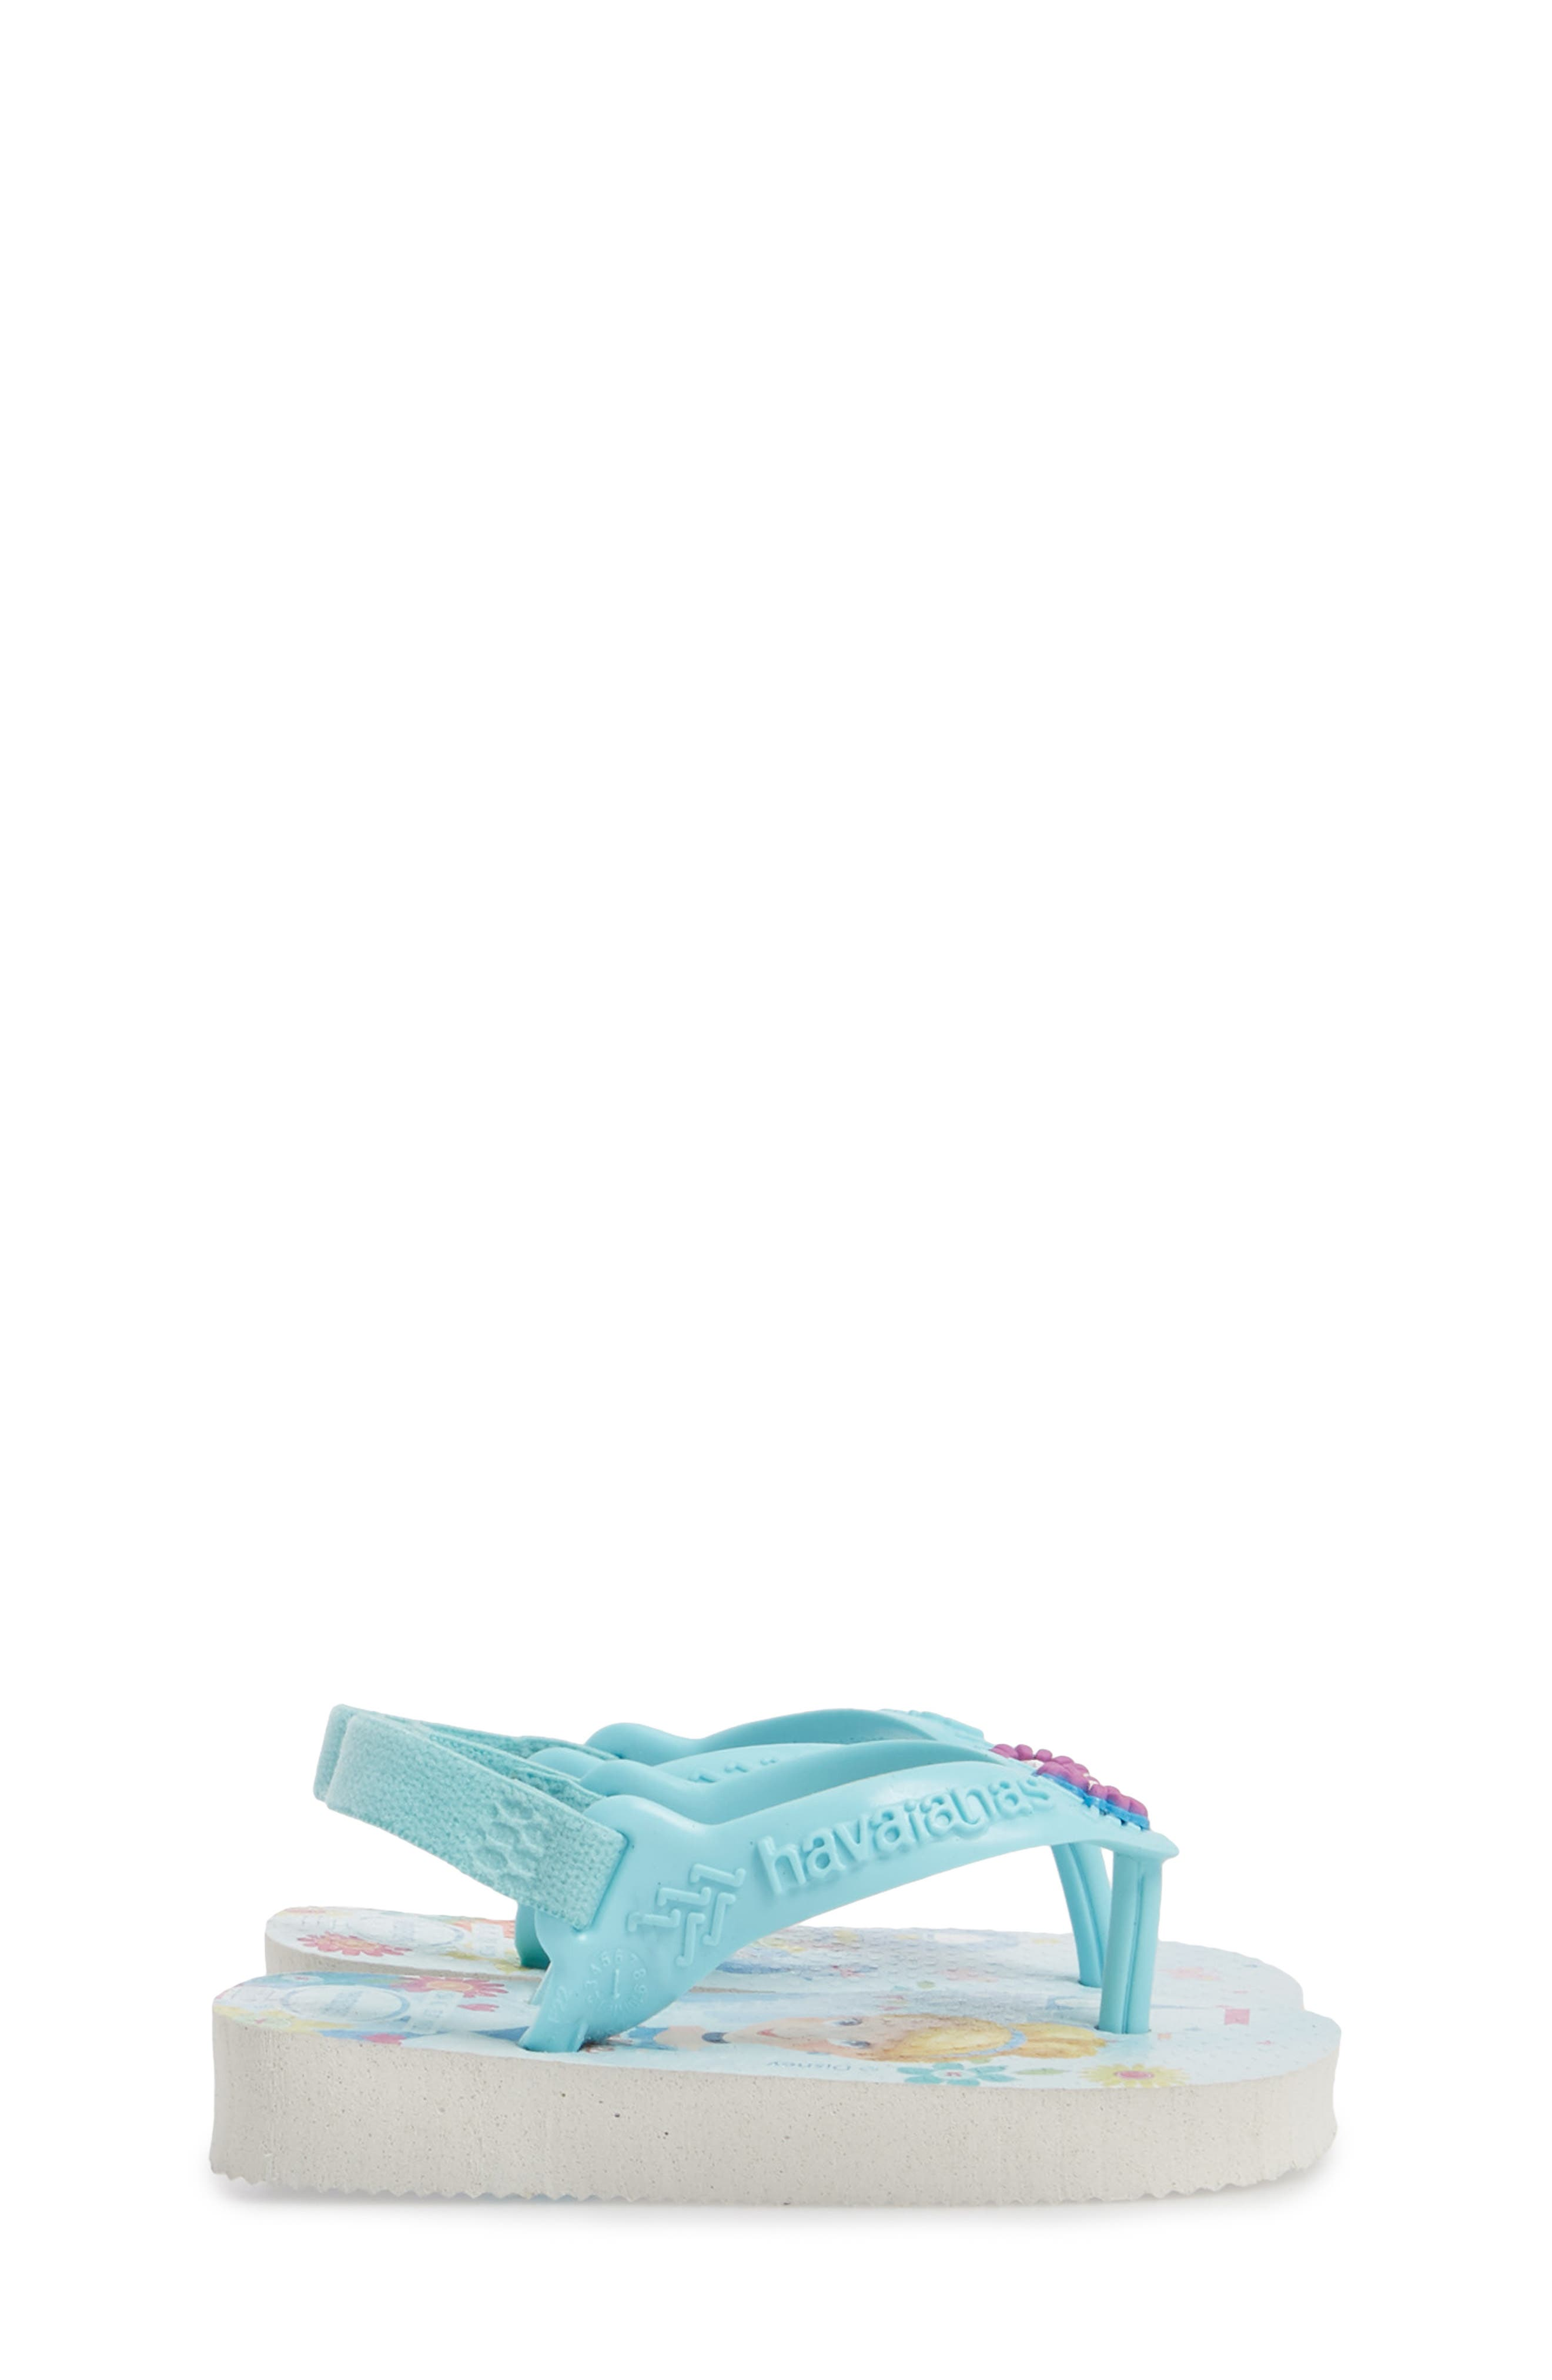 Baby Disney<sup>®</sup> Princess Flip Flop,                             Alternate thumbnail 4, color,                             White/ Ice Blue